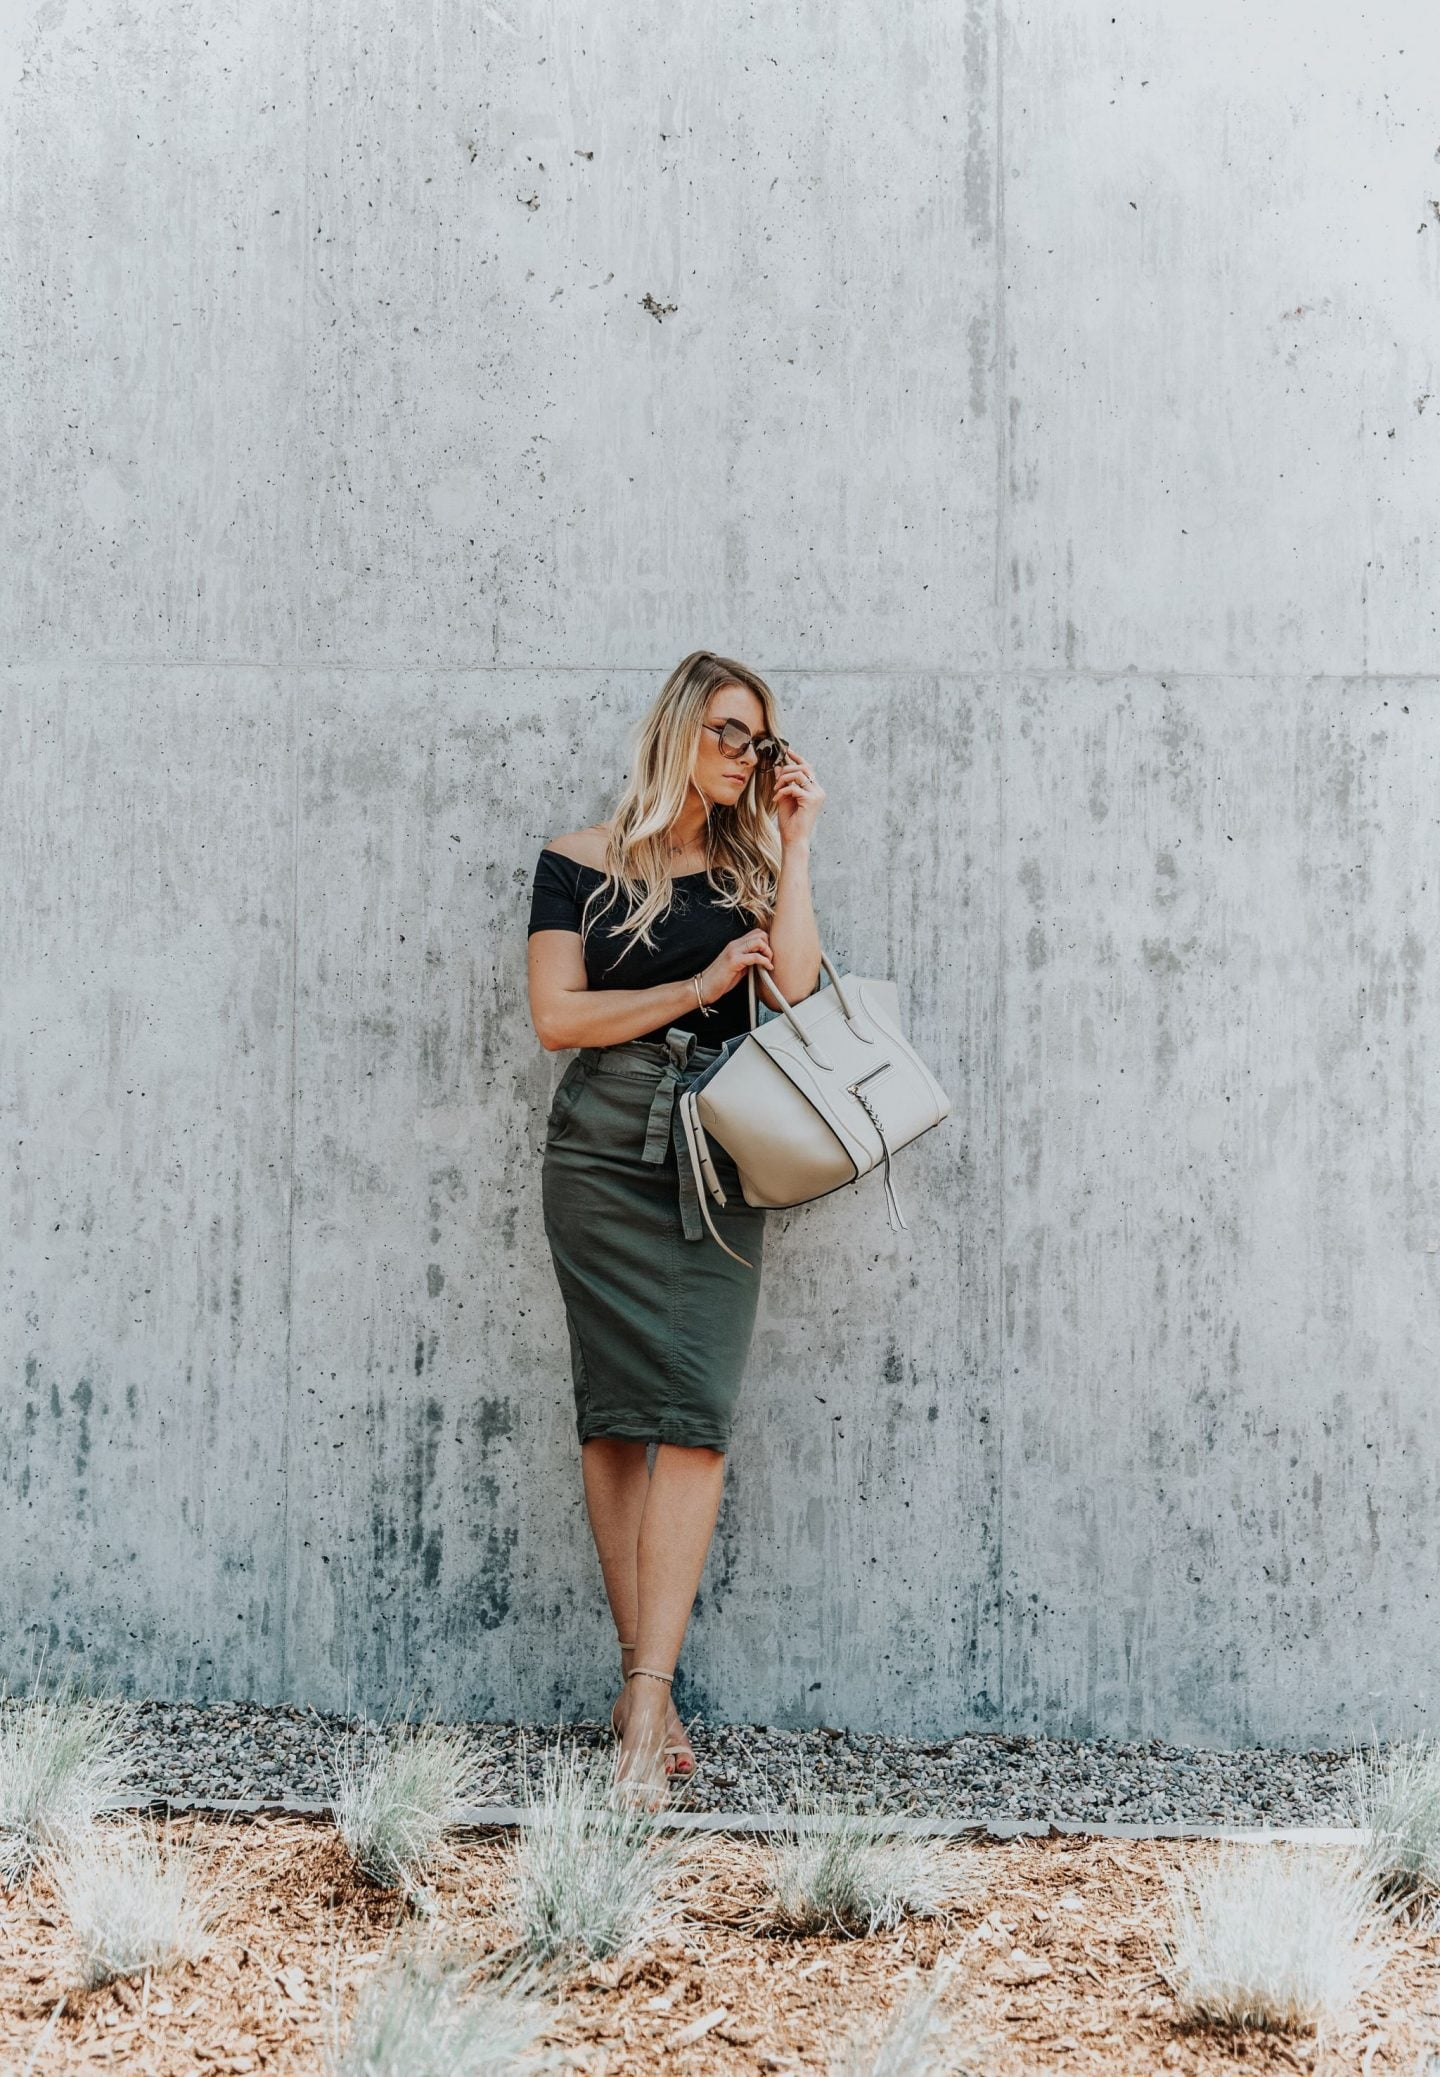 1 person, girl in paperbag waist skirt